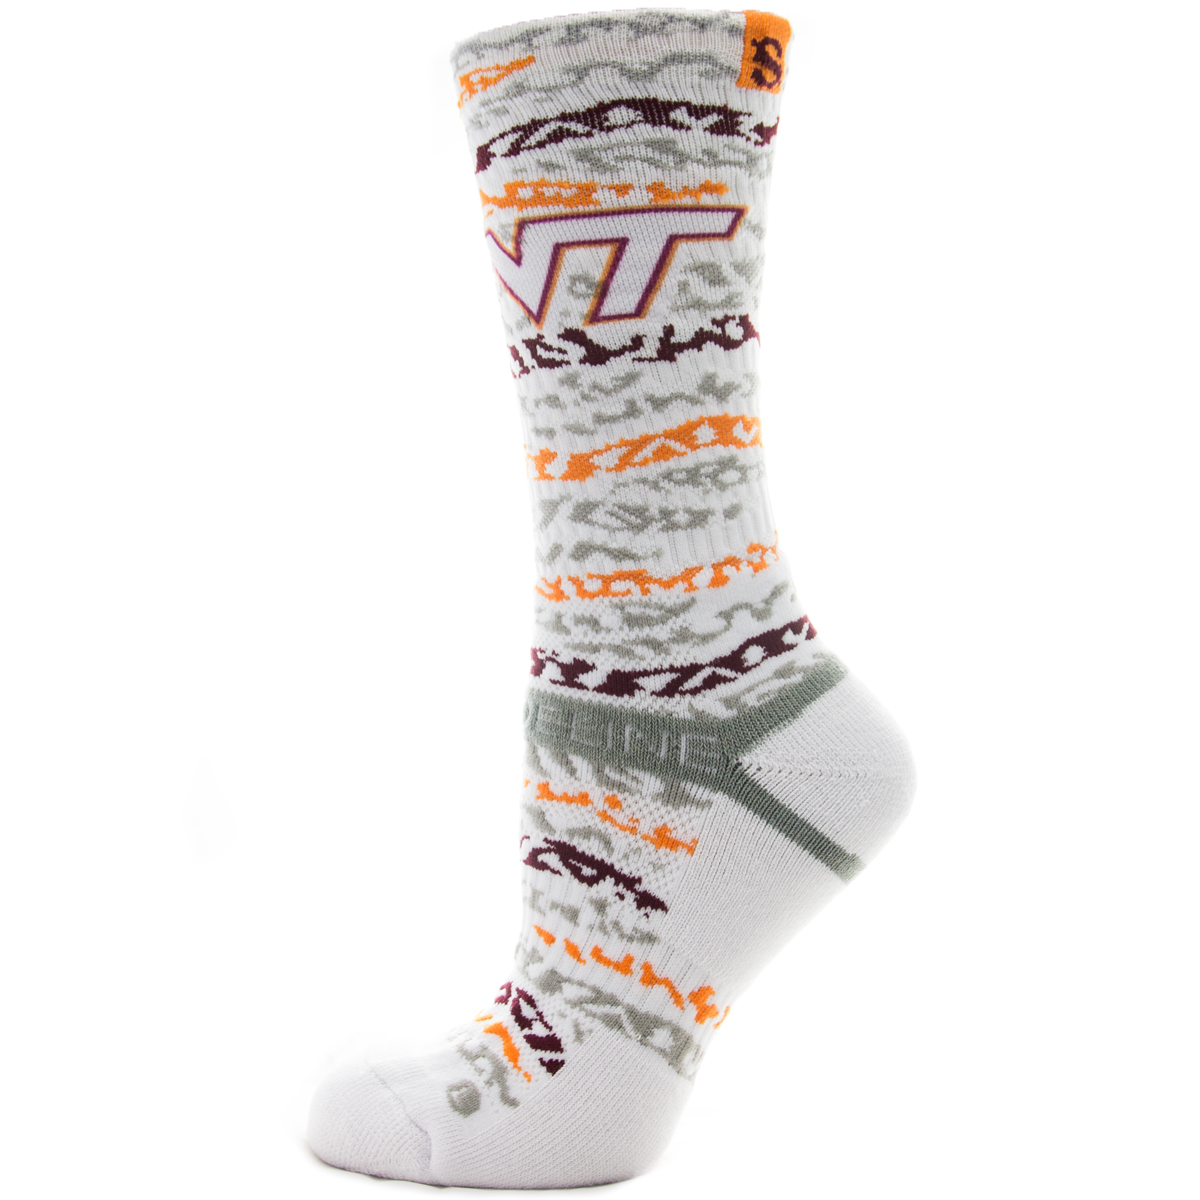 Strideline Athletic Socks Virginia Tech White Bengal 5700311 Strapped Fit Men's Sports Team College